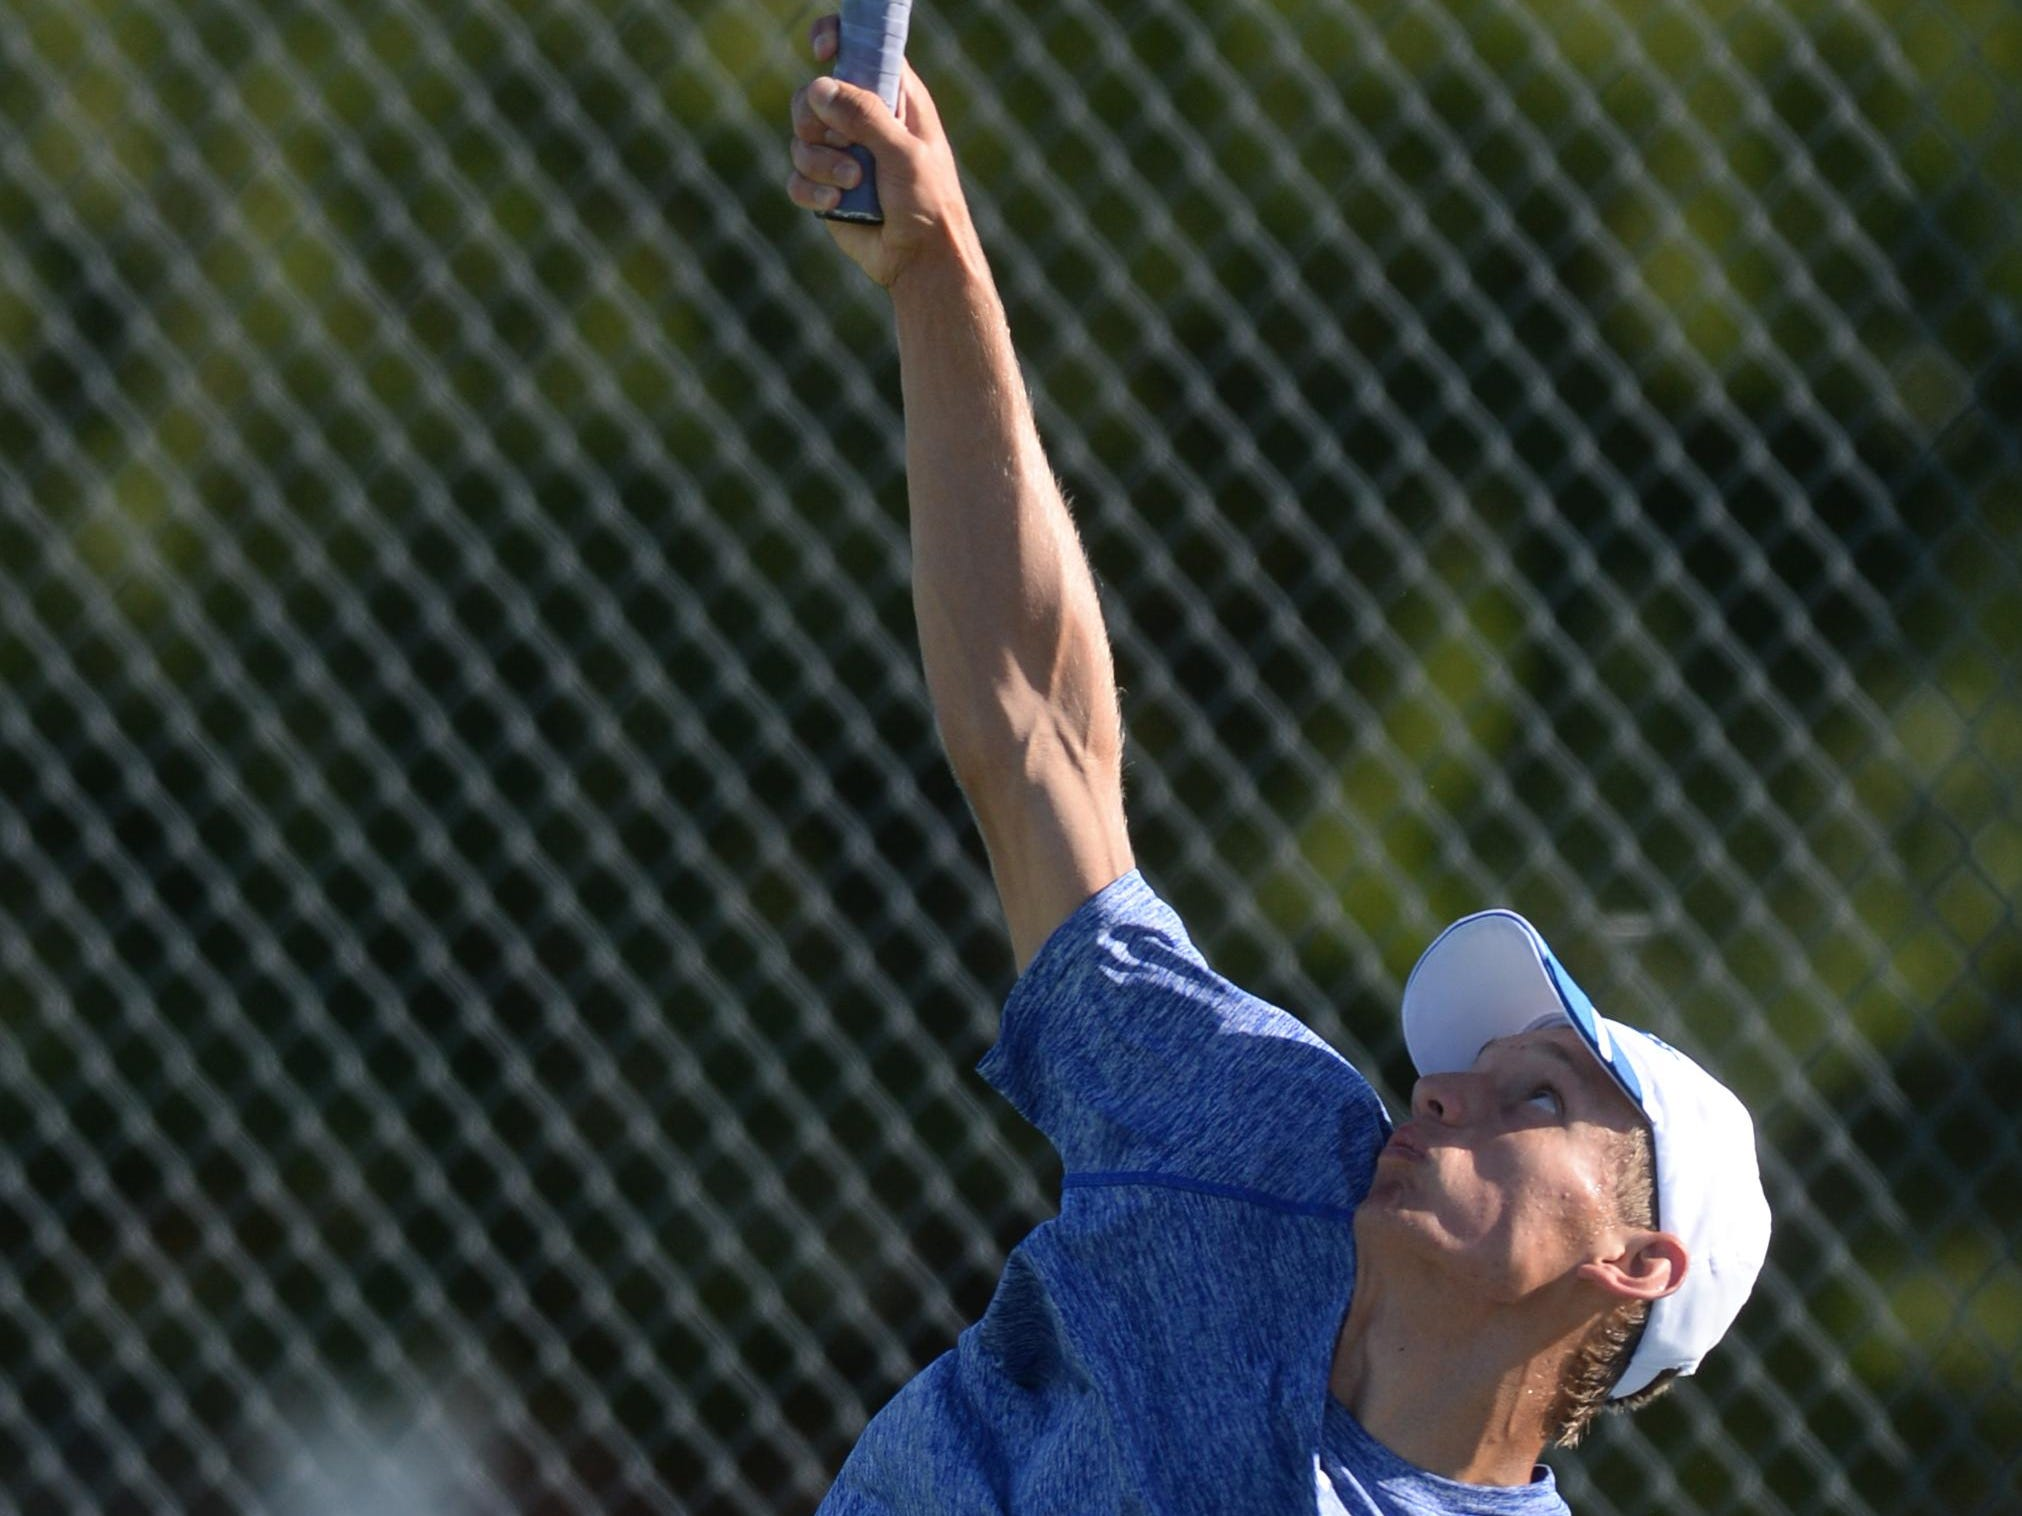 Centerville's Craig Lair serves the ball while playing No. 1 singles against Northeastern Wednesday at Fountain City.